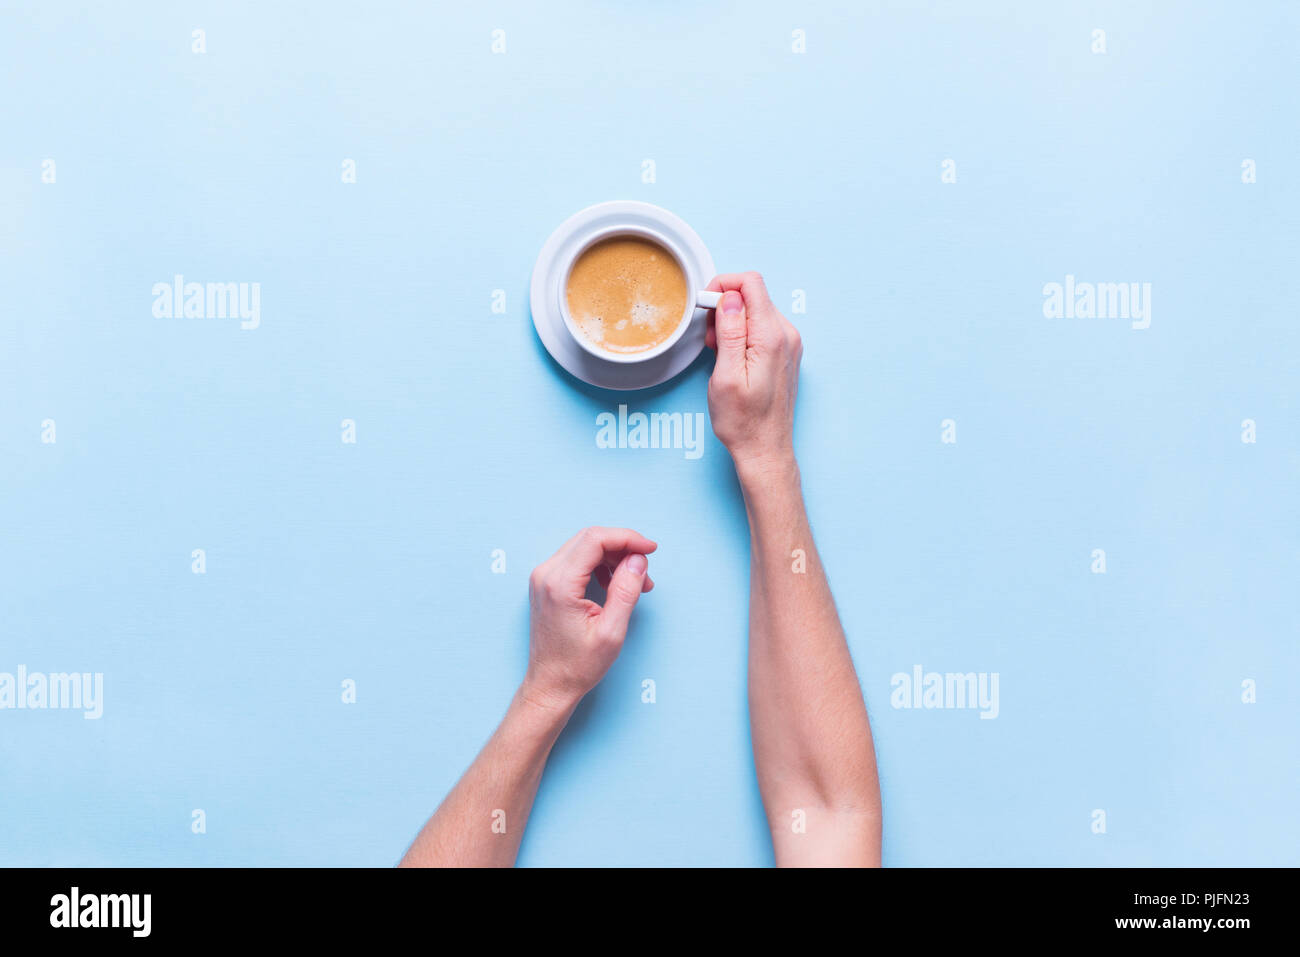 Female Hands Holds Fresh Cup Coffee Color Blue Background Top View Flat Lay Unhealthy Food One Object - Stock Image